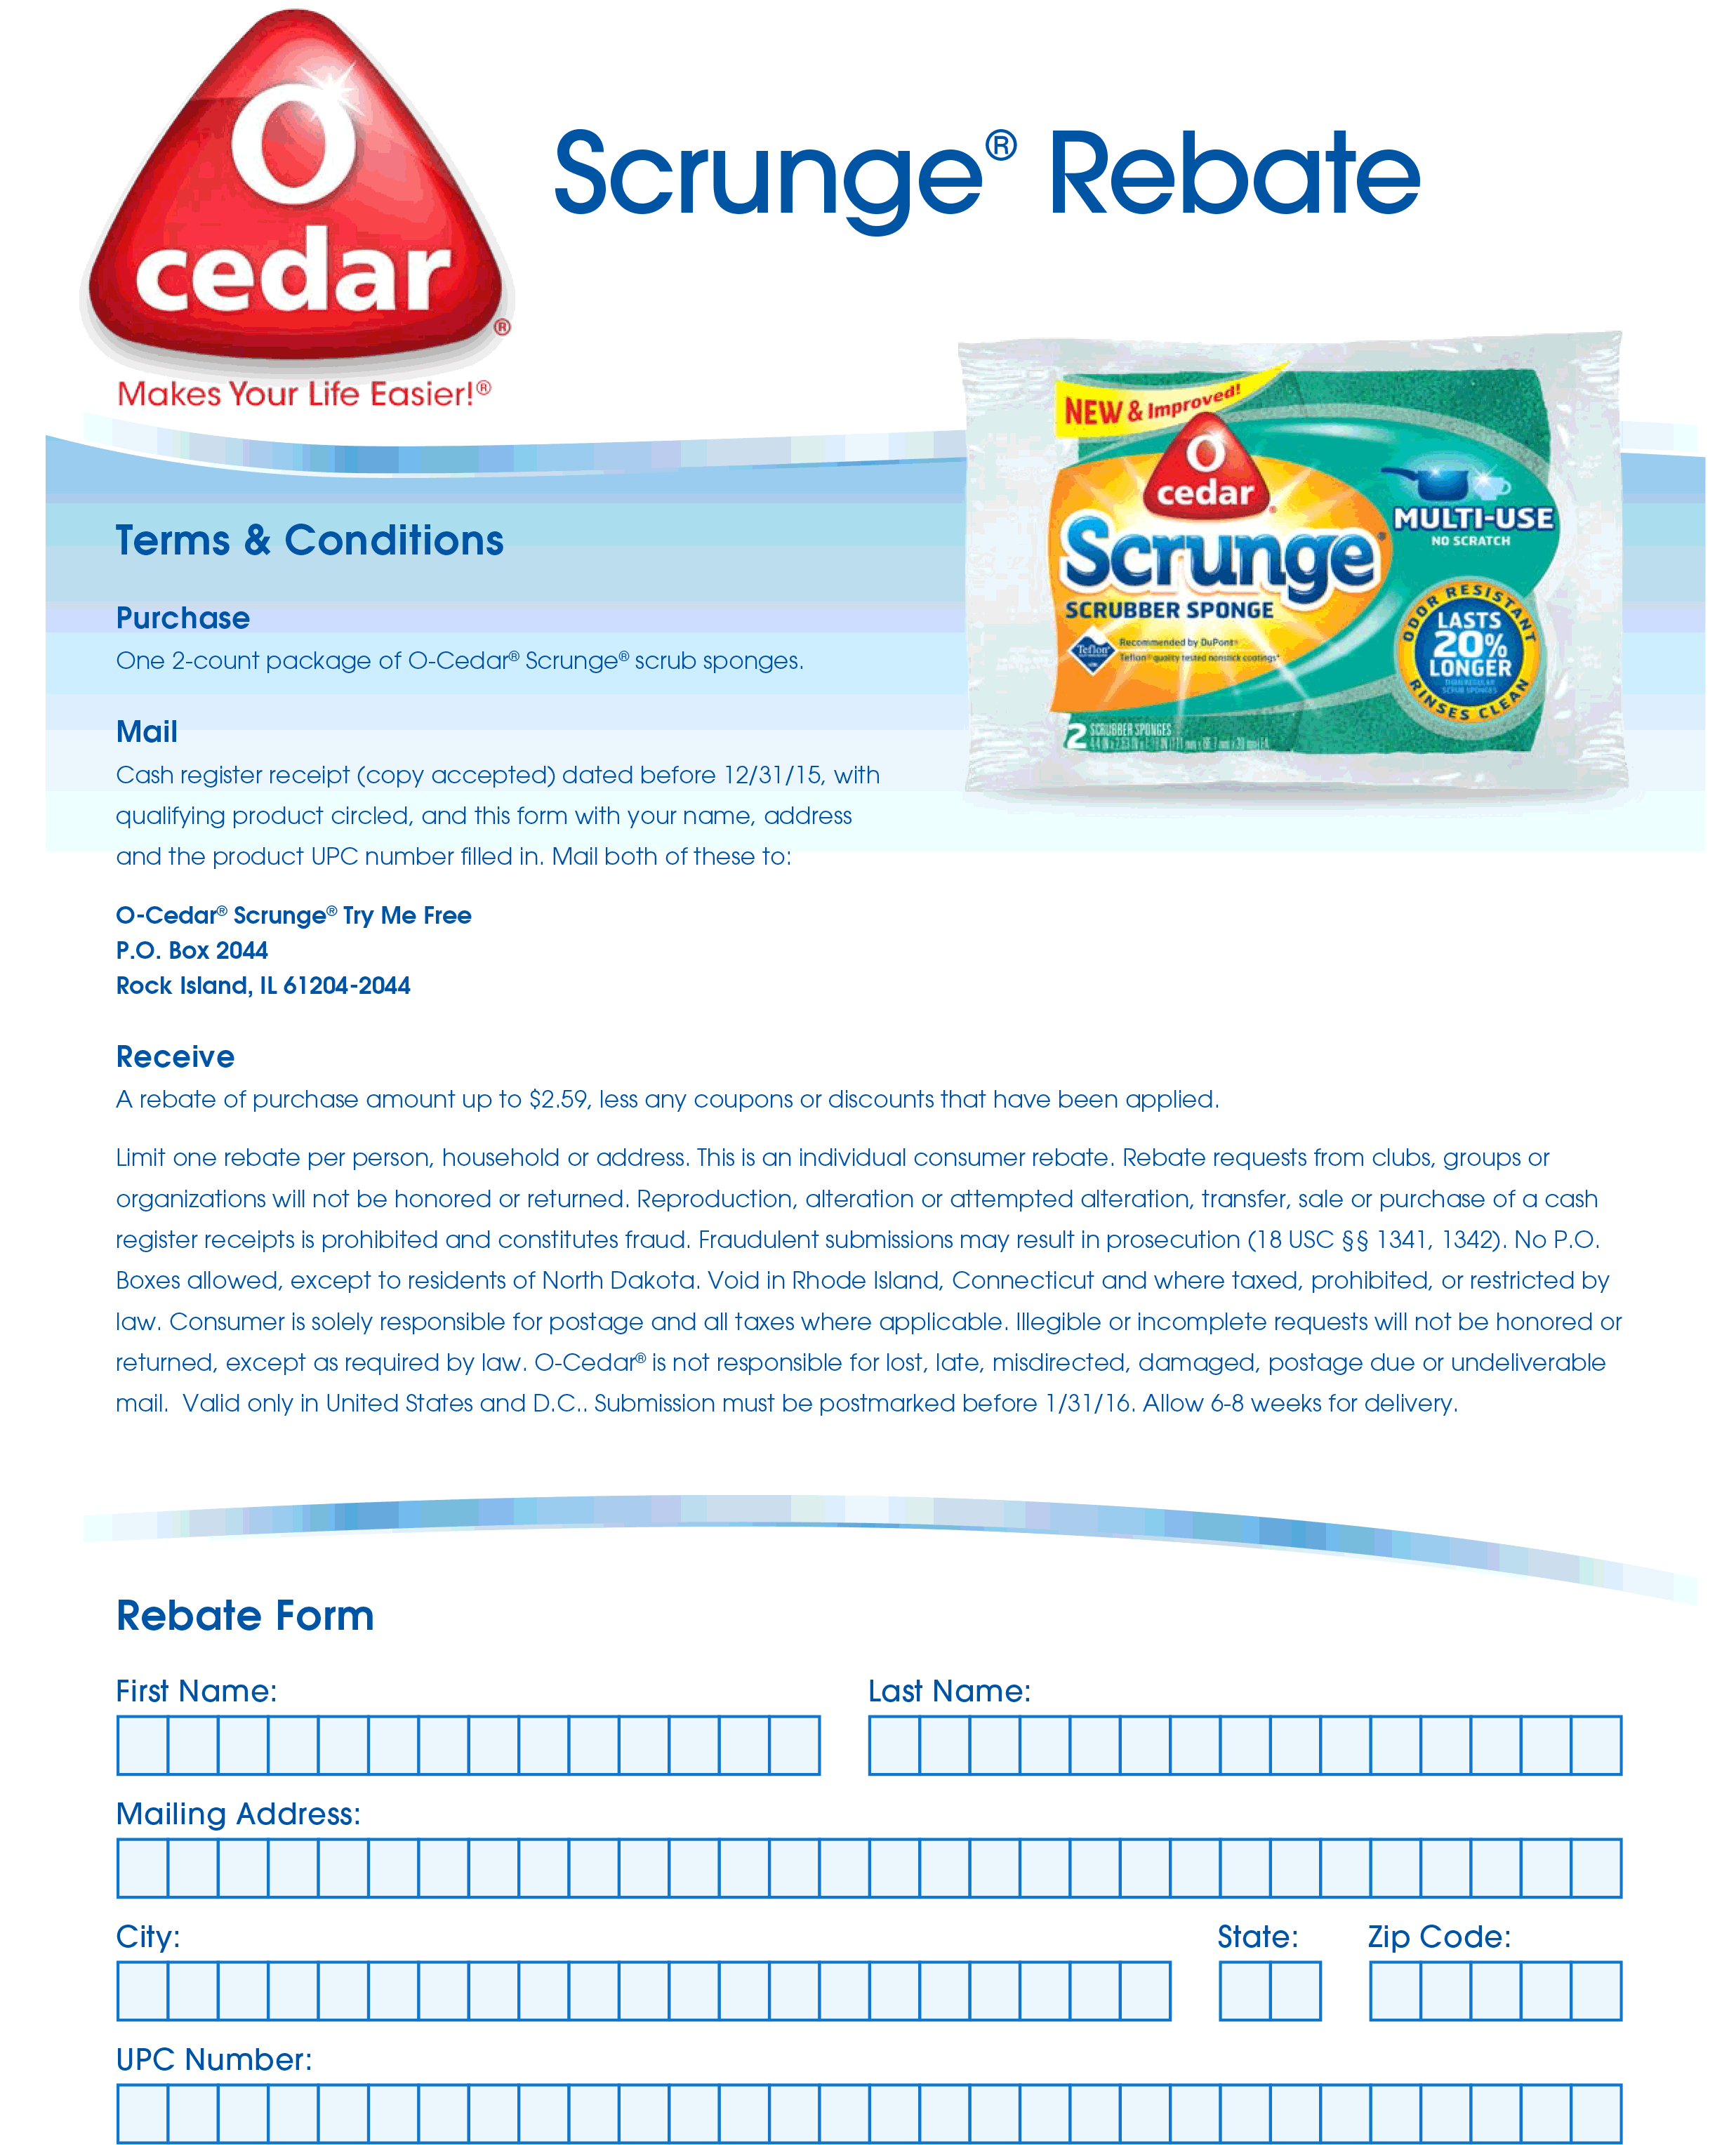 Rebate Coupon October 2016 Free dish sponges via snail mail Rebate